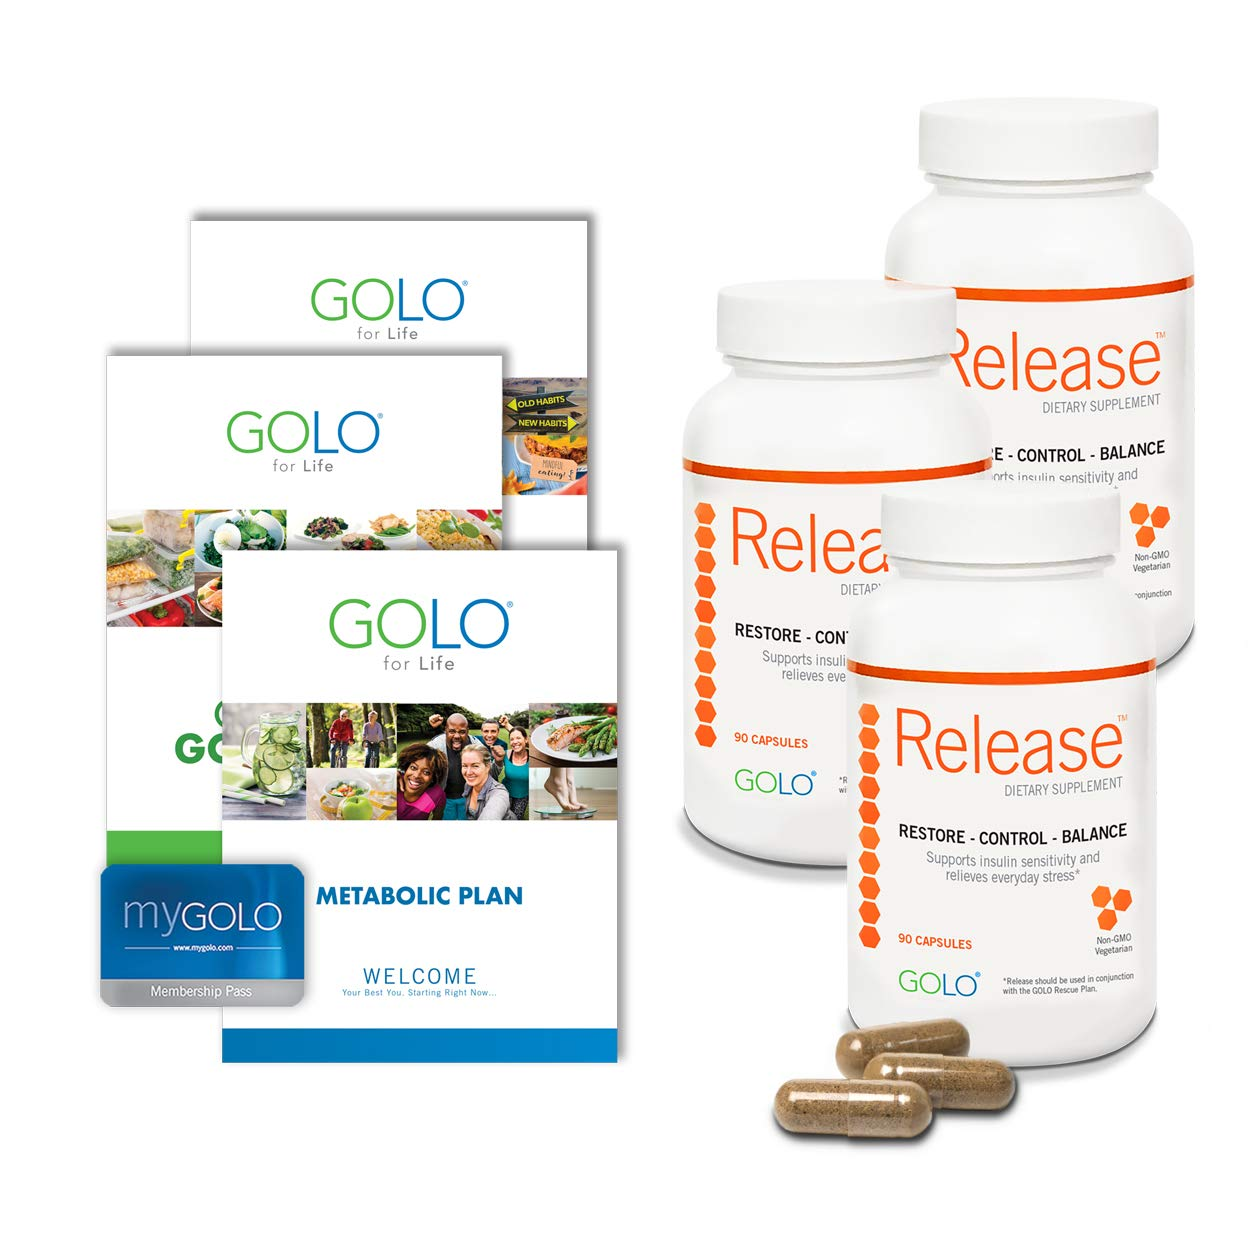 GOLO Metabolic Plan Weight Loss System - Release Weight Loss Diet Supplements - Made with Natural Ingredients - 90 Day Supply